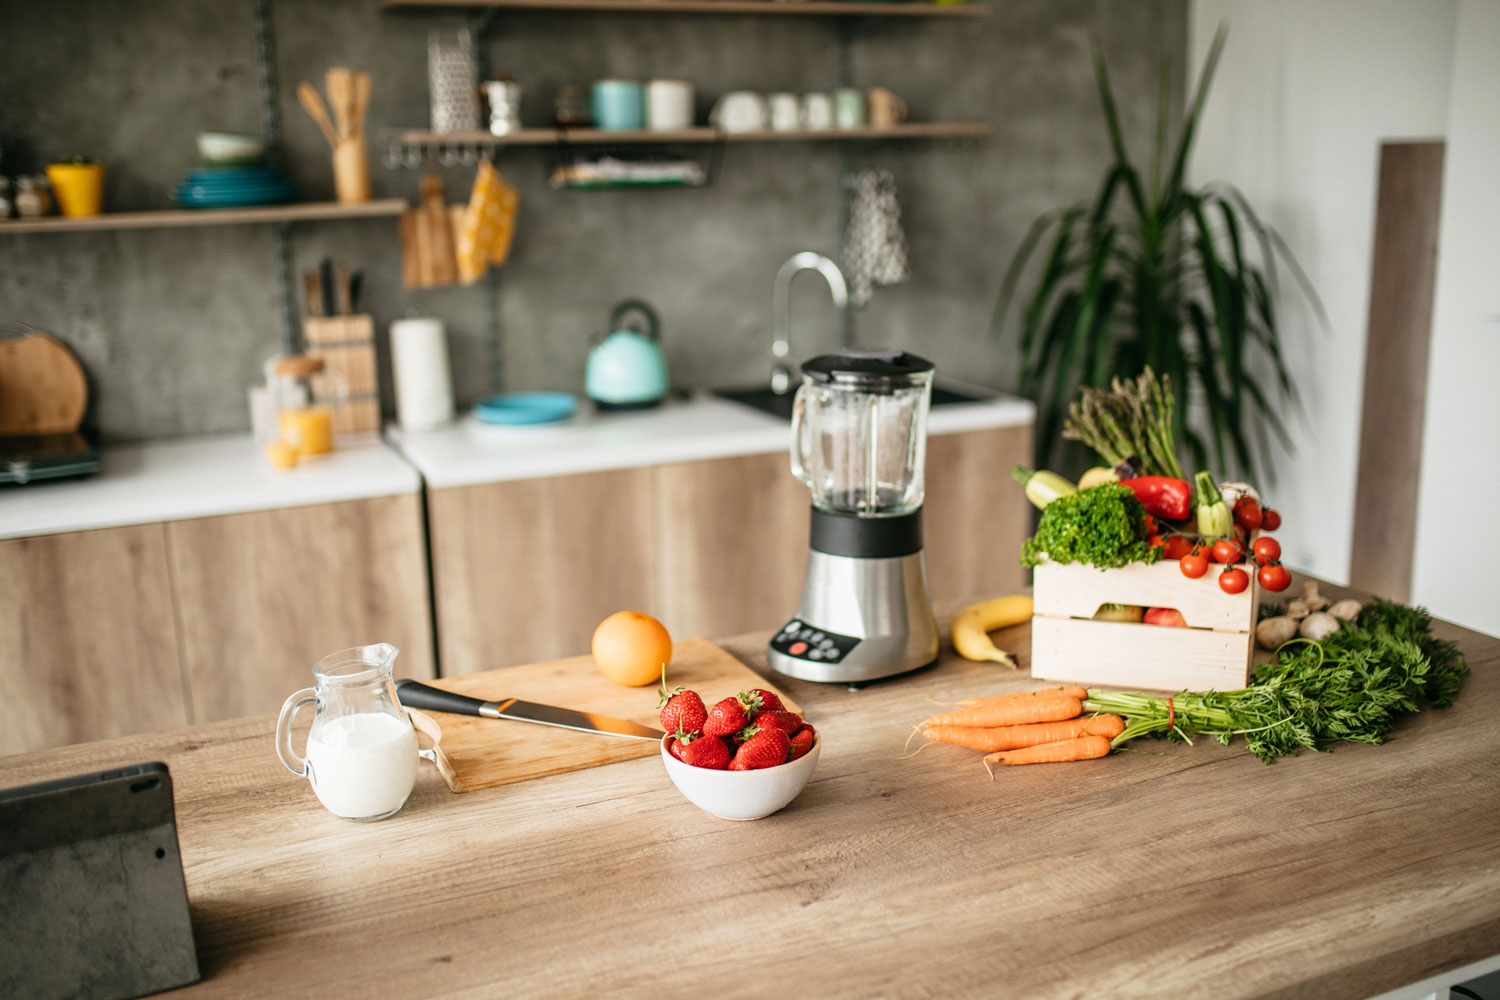 Can A Blender Be Used As A Grinder?